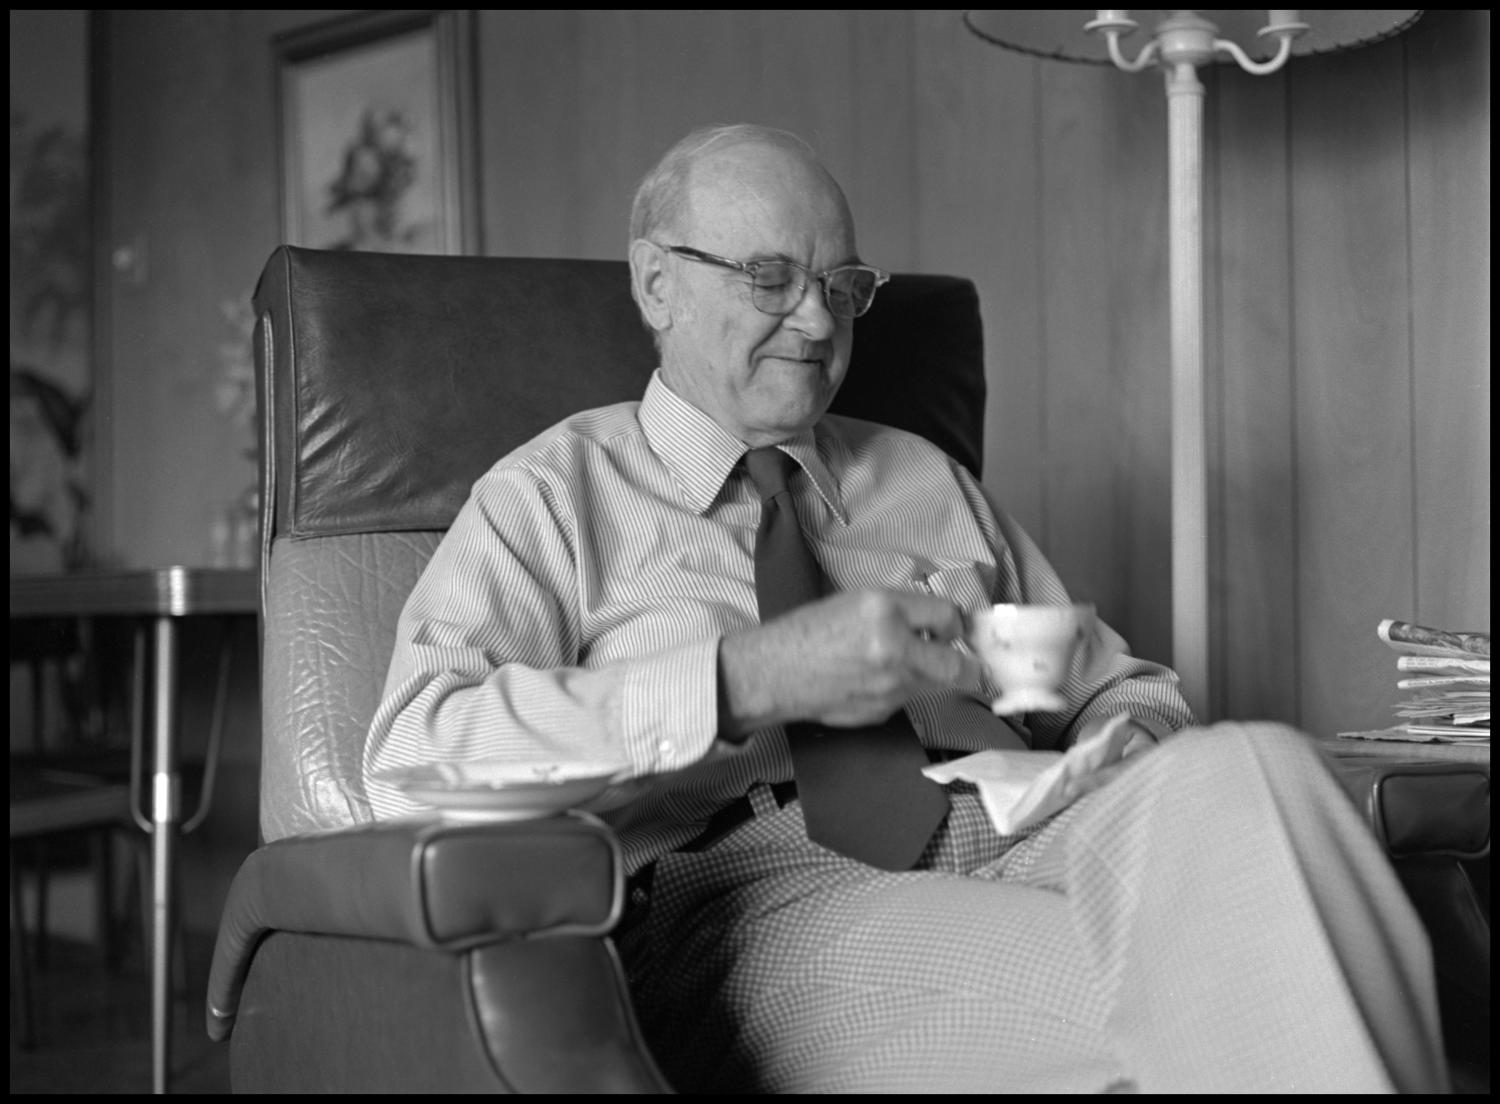 [Garland Brookshear looking at his teacup], Photograph of Garland Brookshear, a member of the Management faculty at NTSU, sitting in an easy-chair and holding his teacup. The saucer is still on the armrest. Brookshear was being photographed for his retirement.,